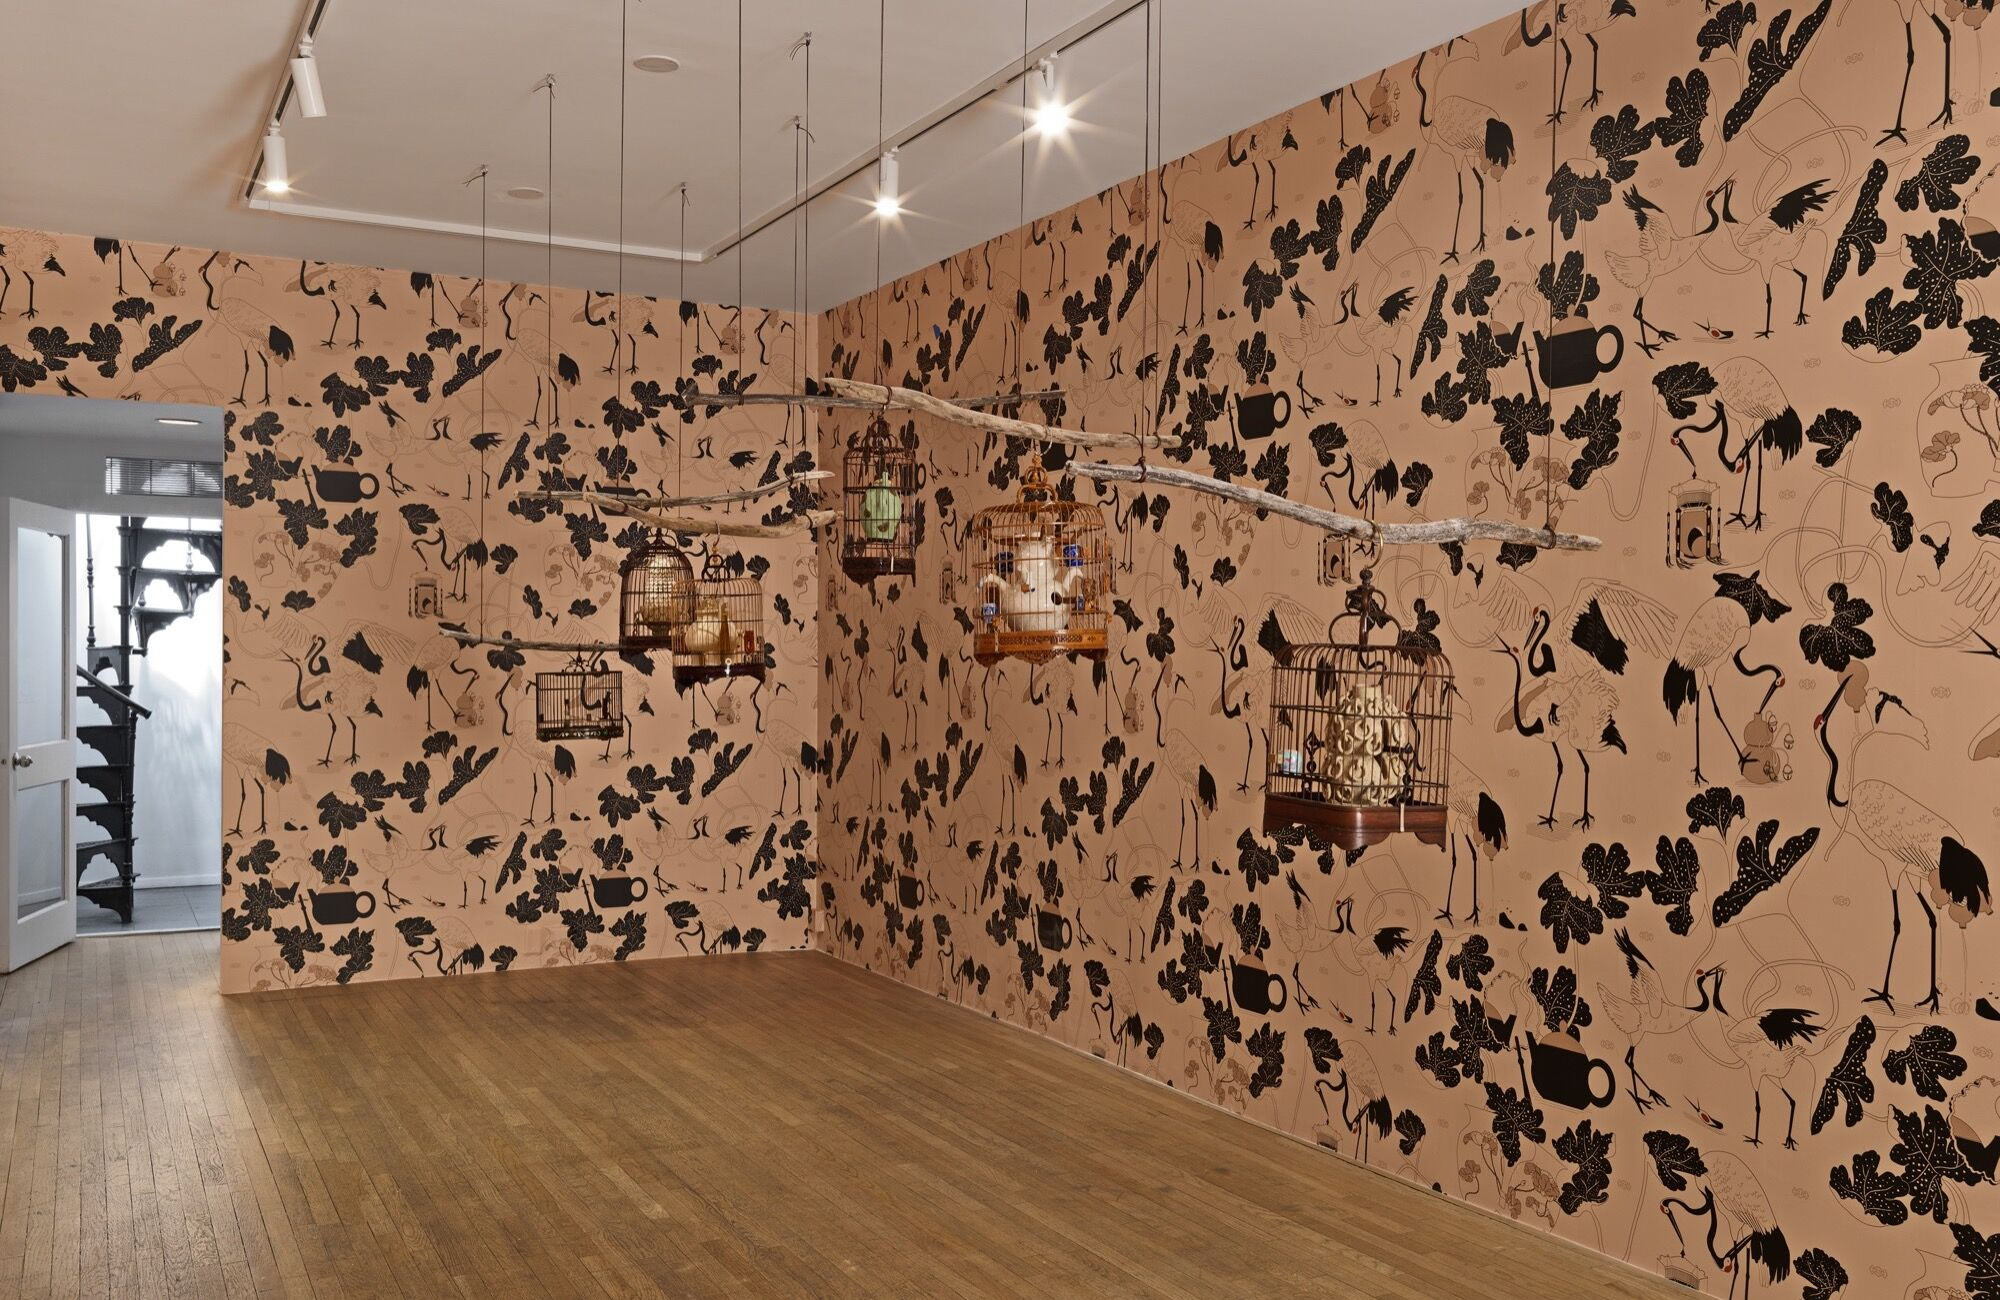 """Dominique Fung, installation view of """"It's Not Polite To Stare"""" at Jeffrey Deitch, New York, 2021. Photo by Cooper Dodds and Genevieve Hanson. Courtesy of the artist and Jeffrey Deitch, New York."""